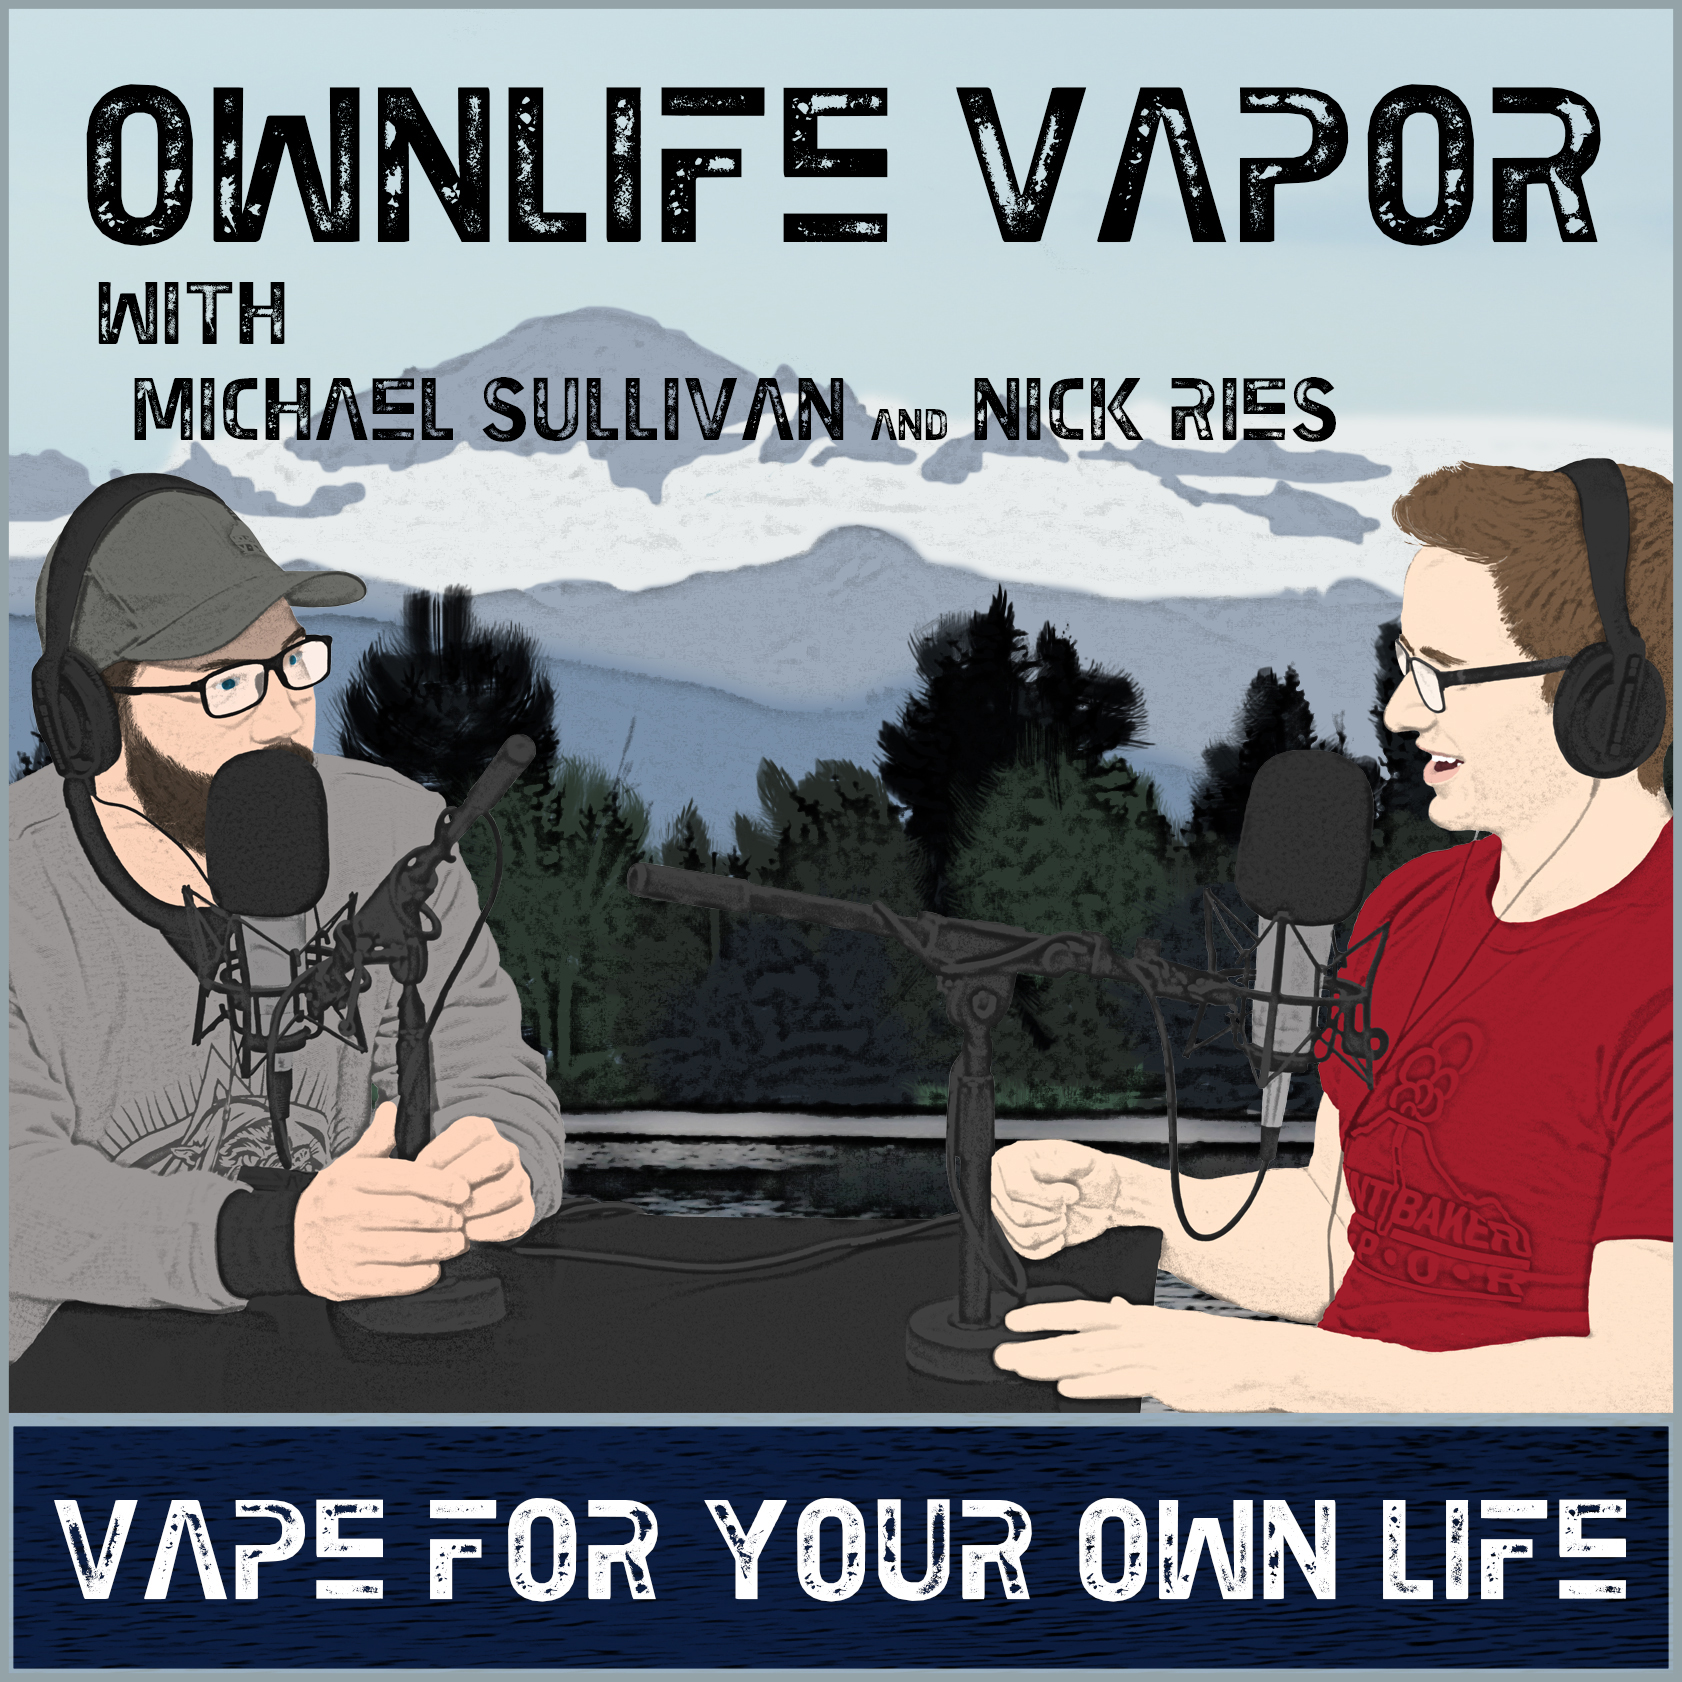 Episode 37 - Non-Vaper Support in the Vaping Industry